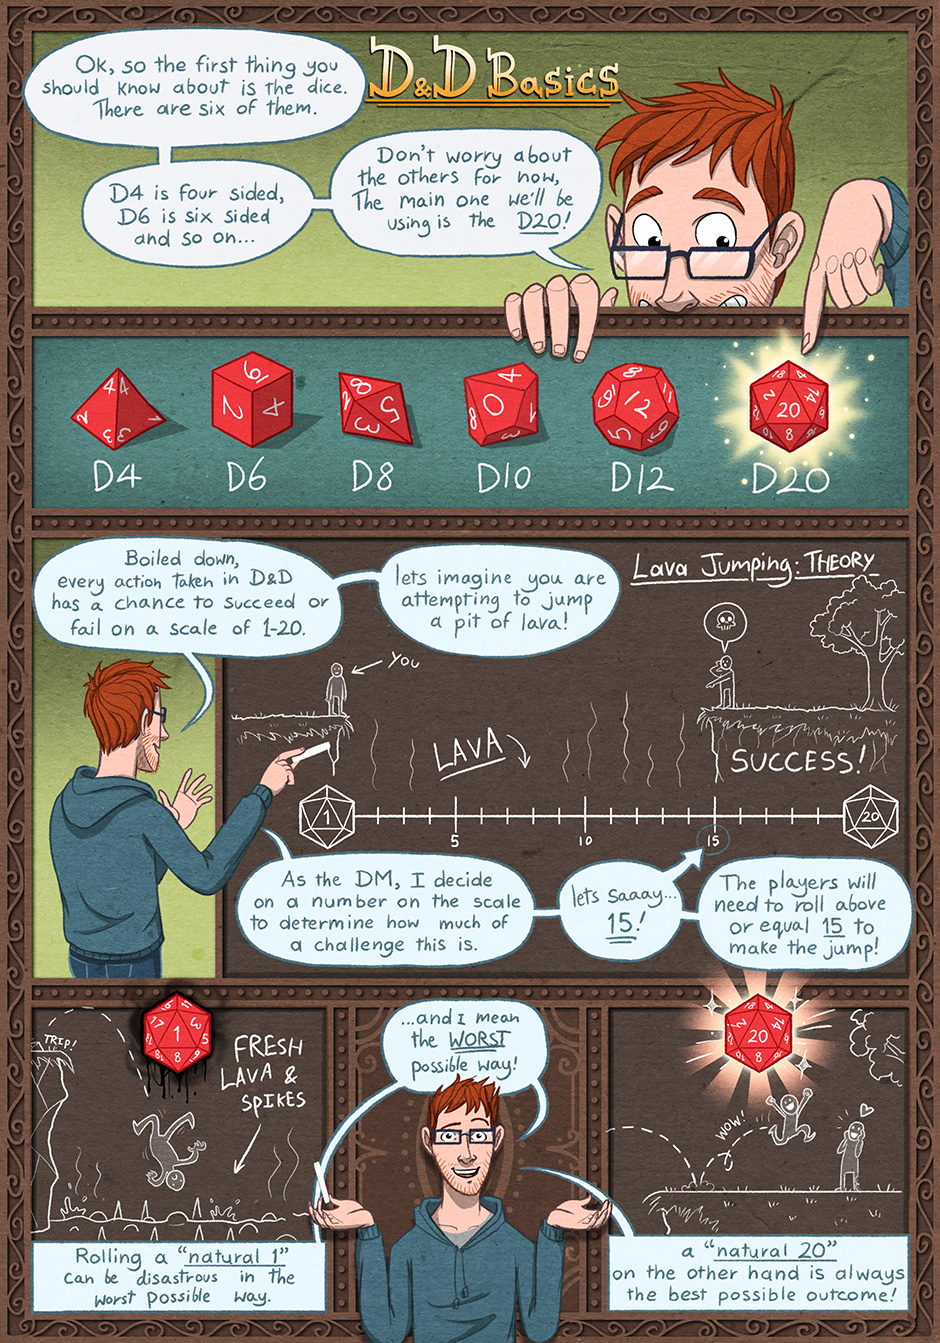 D&D-diaries-page-2-(reduced).jpg